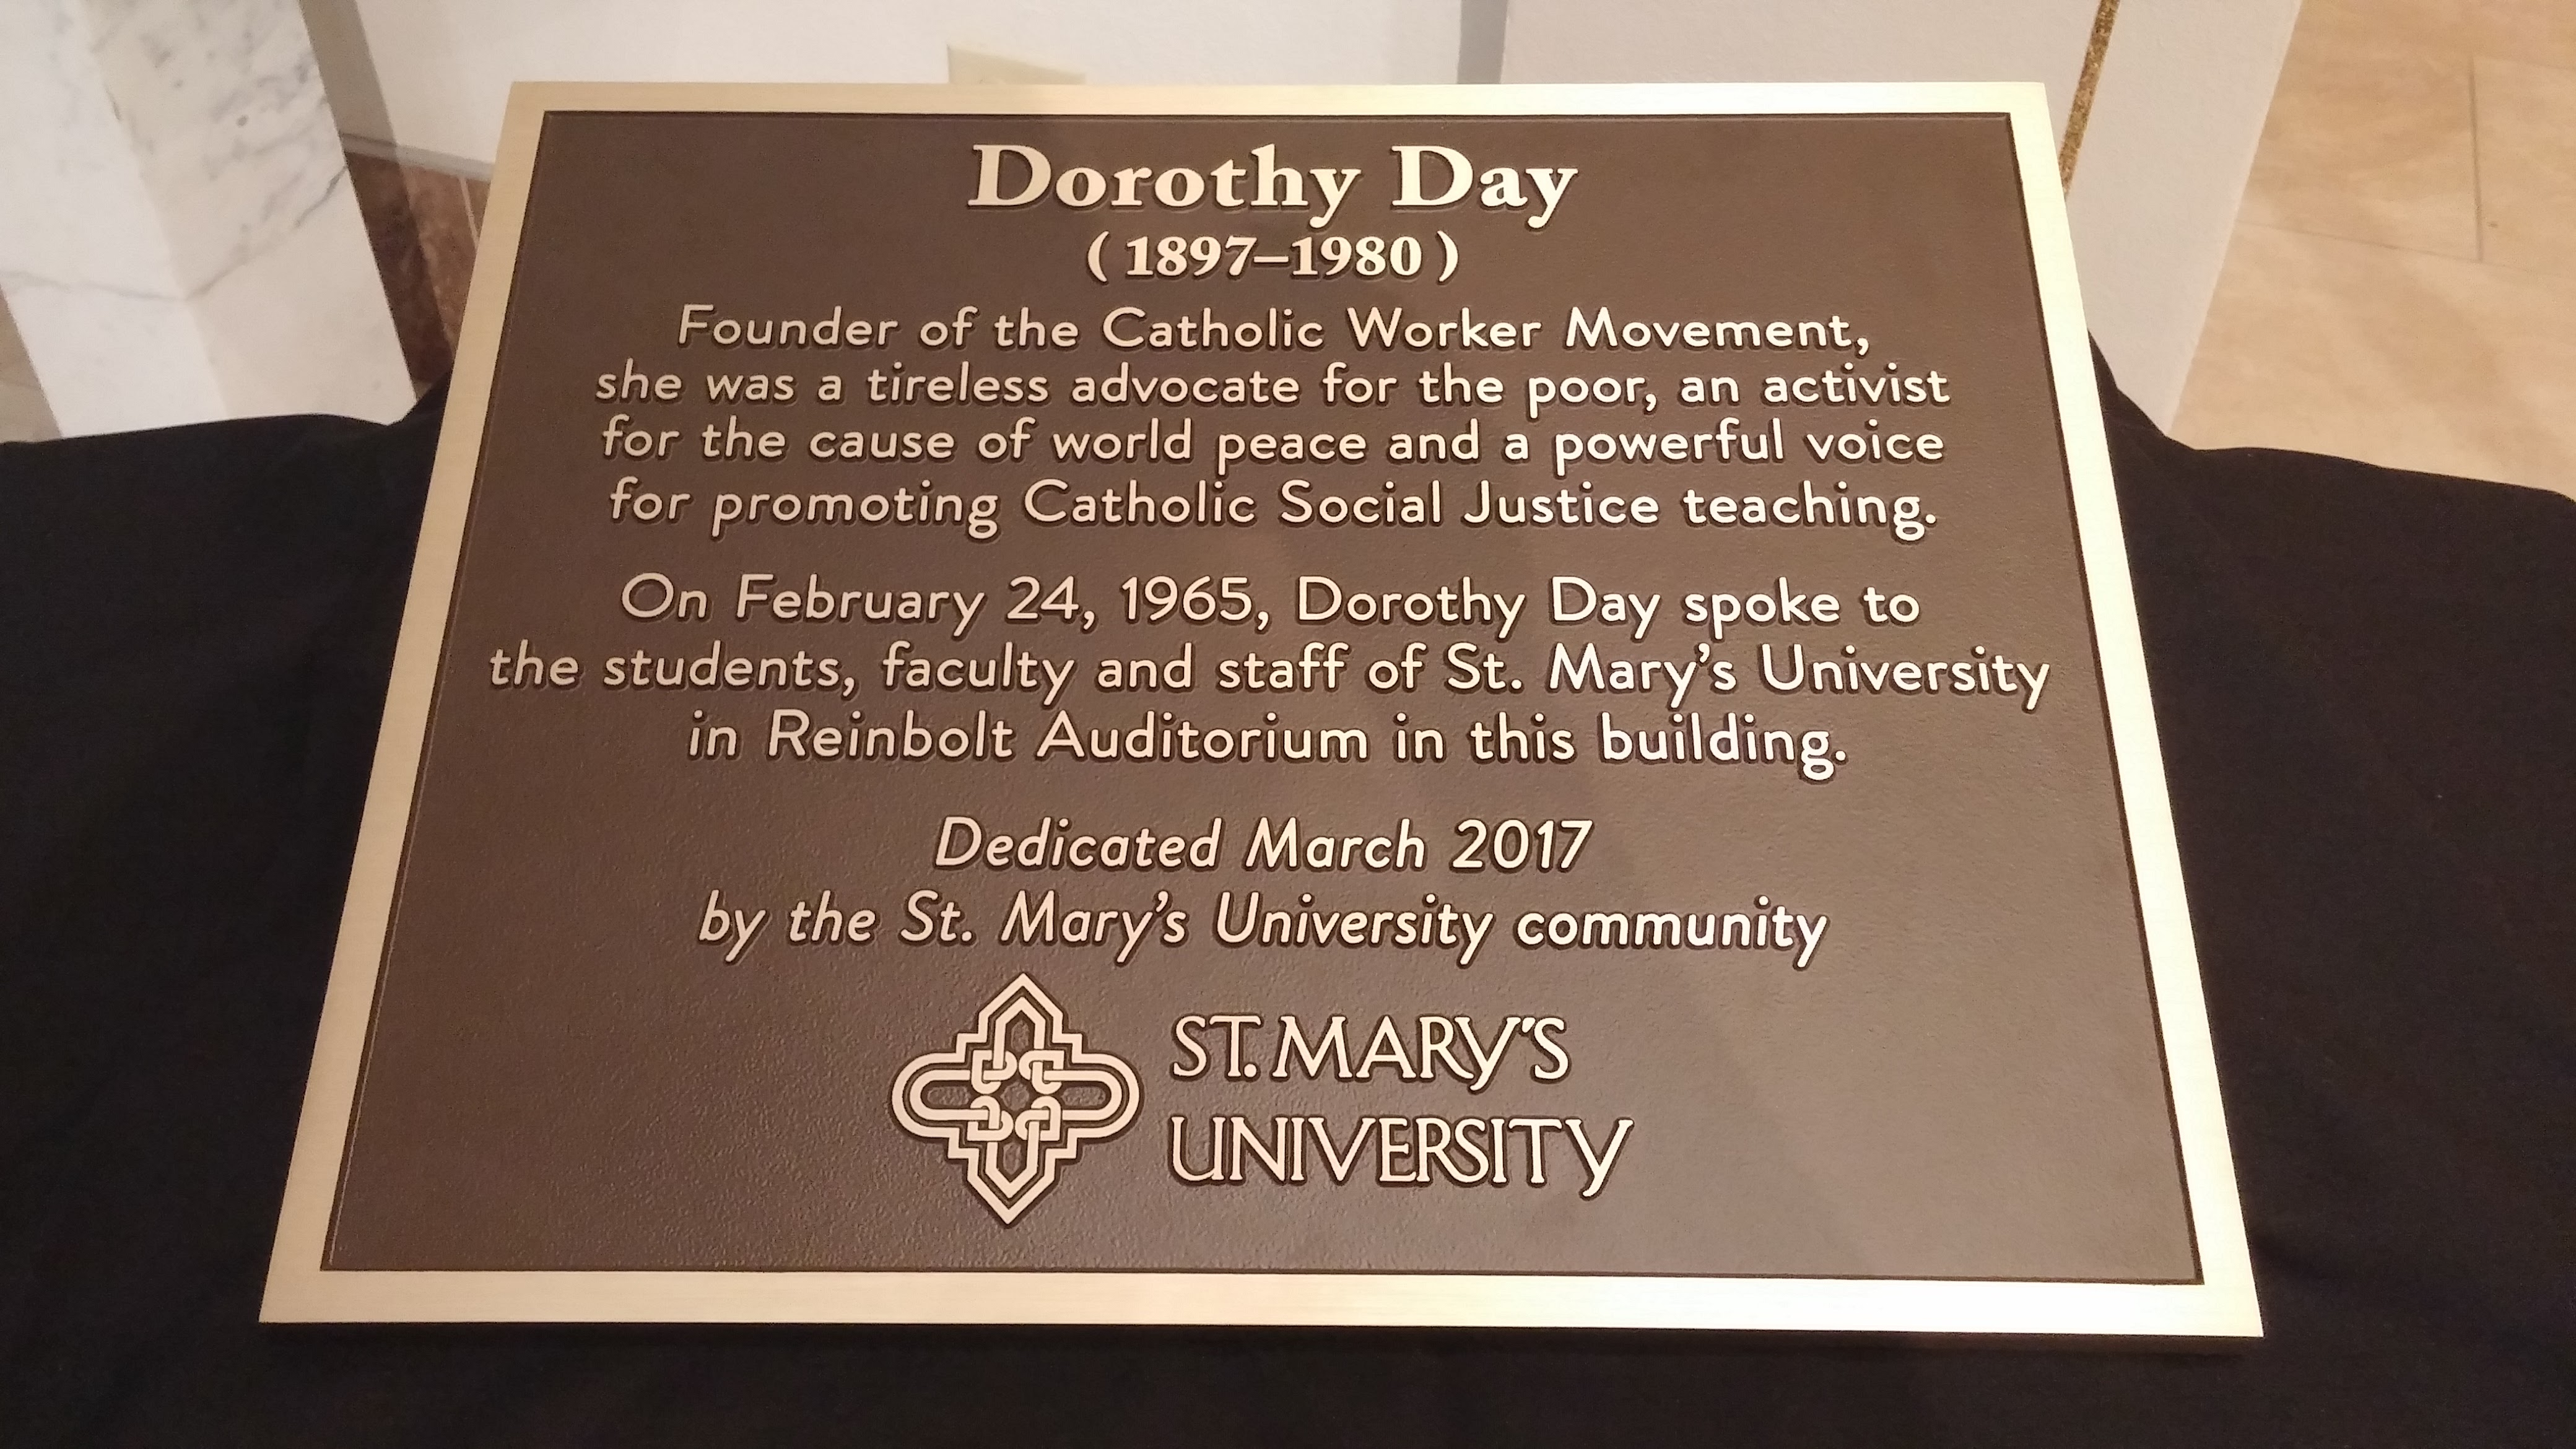 Plaque commemorating Dorothy Day's visit to St. Mary's University in 1965